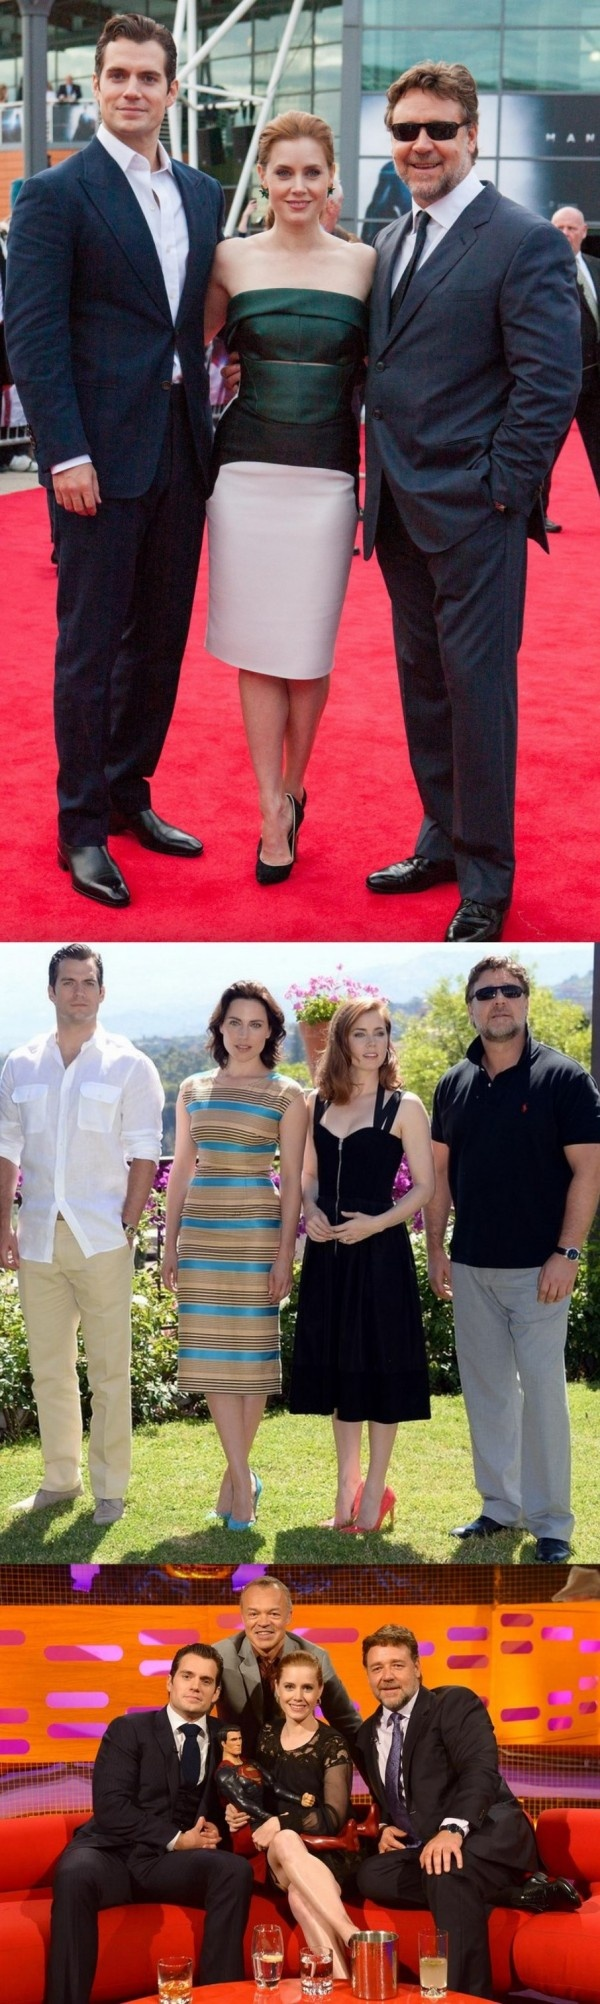 Fashion: Amy Adams, Henry Cavill, & Russell Crowe 'Man Of Steel' UK & Taormina Filmfest 2013 Tours - http://www.becauseiamfabulous.com/2013/06/fashion-amy-adams-henry-cavill-russell-crowe-man-of-steel-uk-taormina-filmfest-2013-tours/